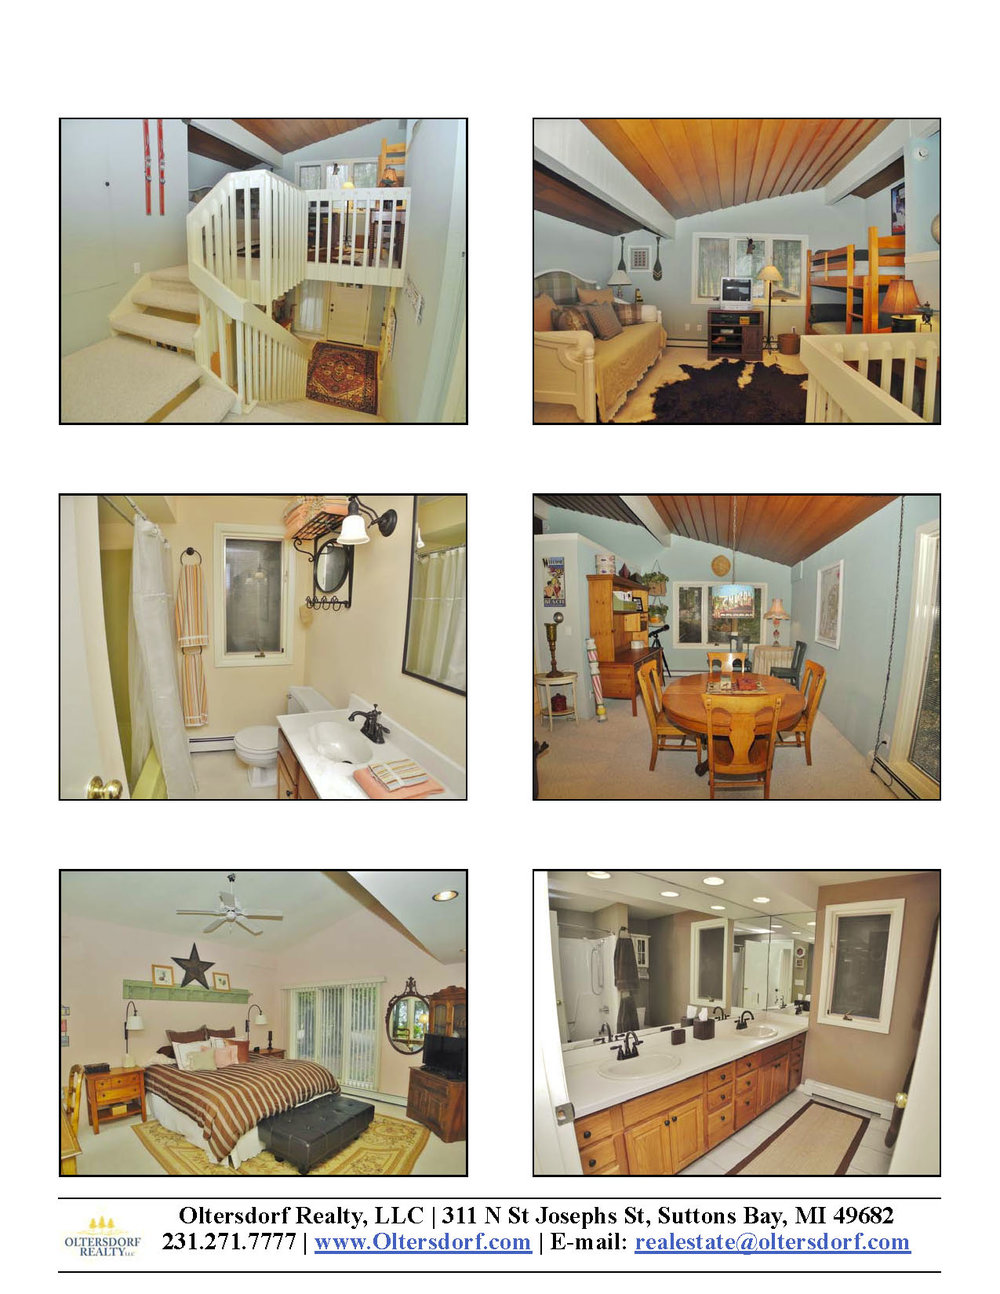 1355 S Nanagosa Trail Suttons Bay – FOR SALE by Oltersdorf Realty LLC - Marketing Packet (7).jpg